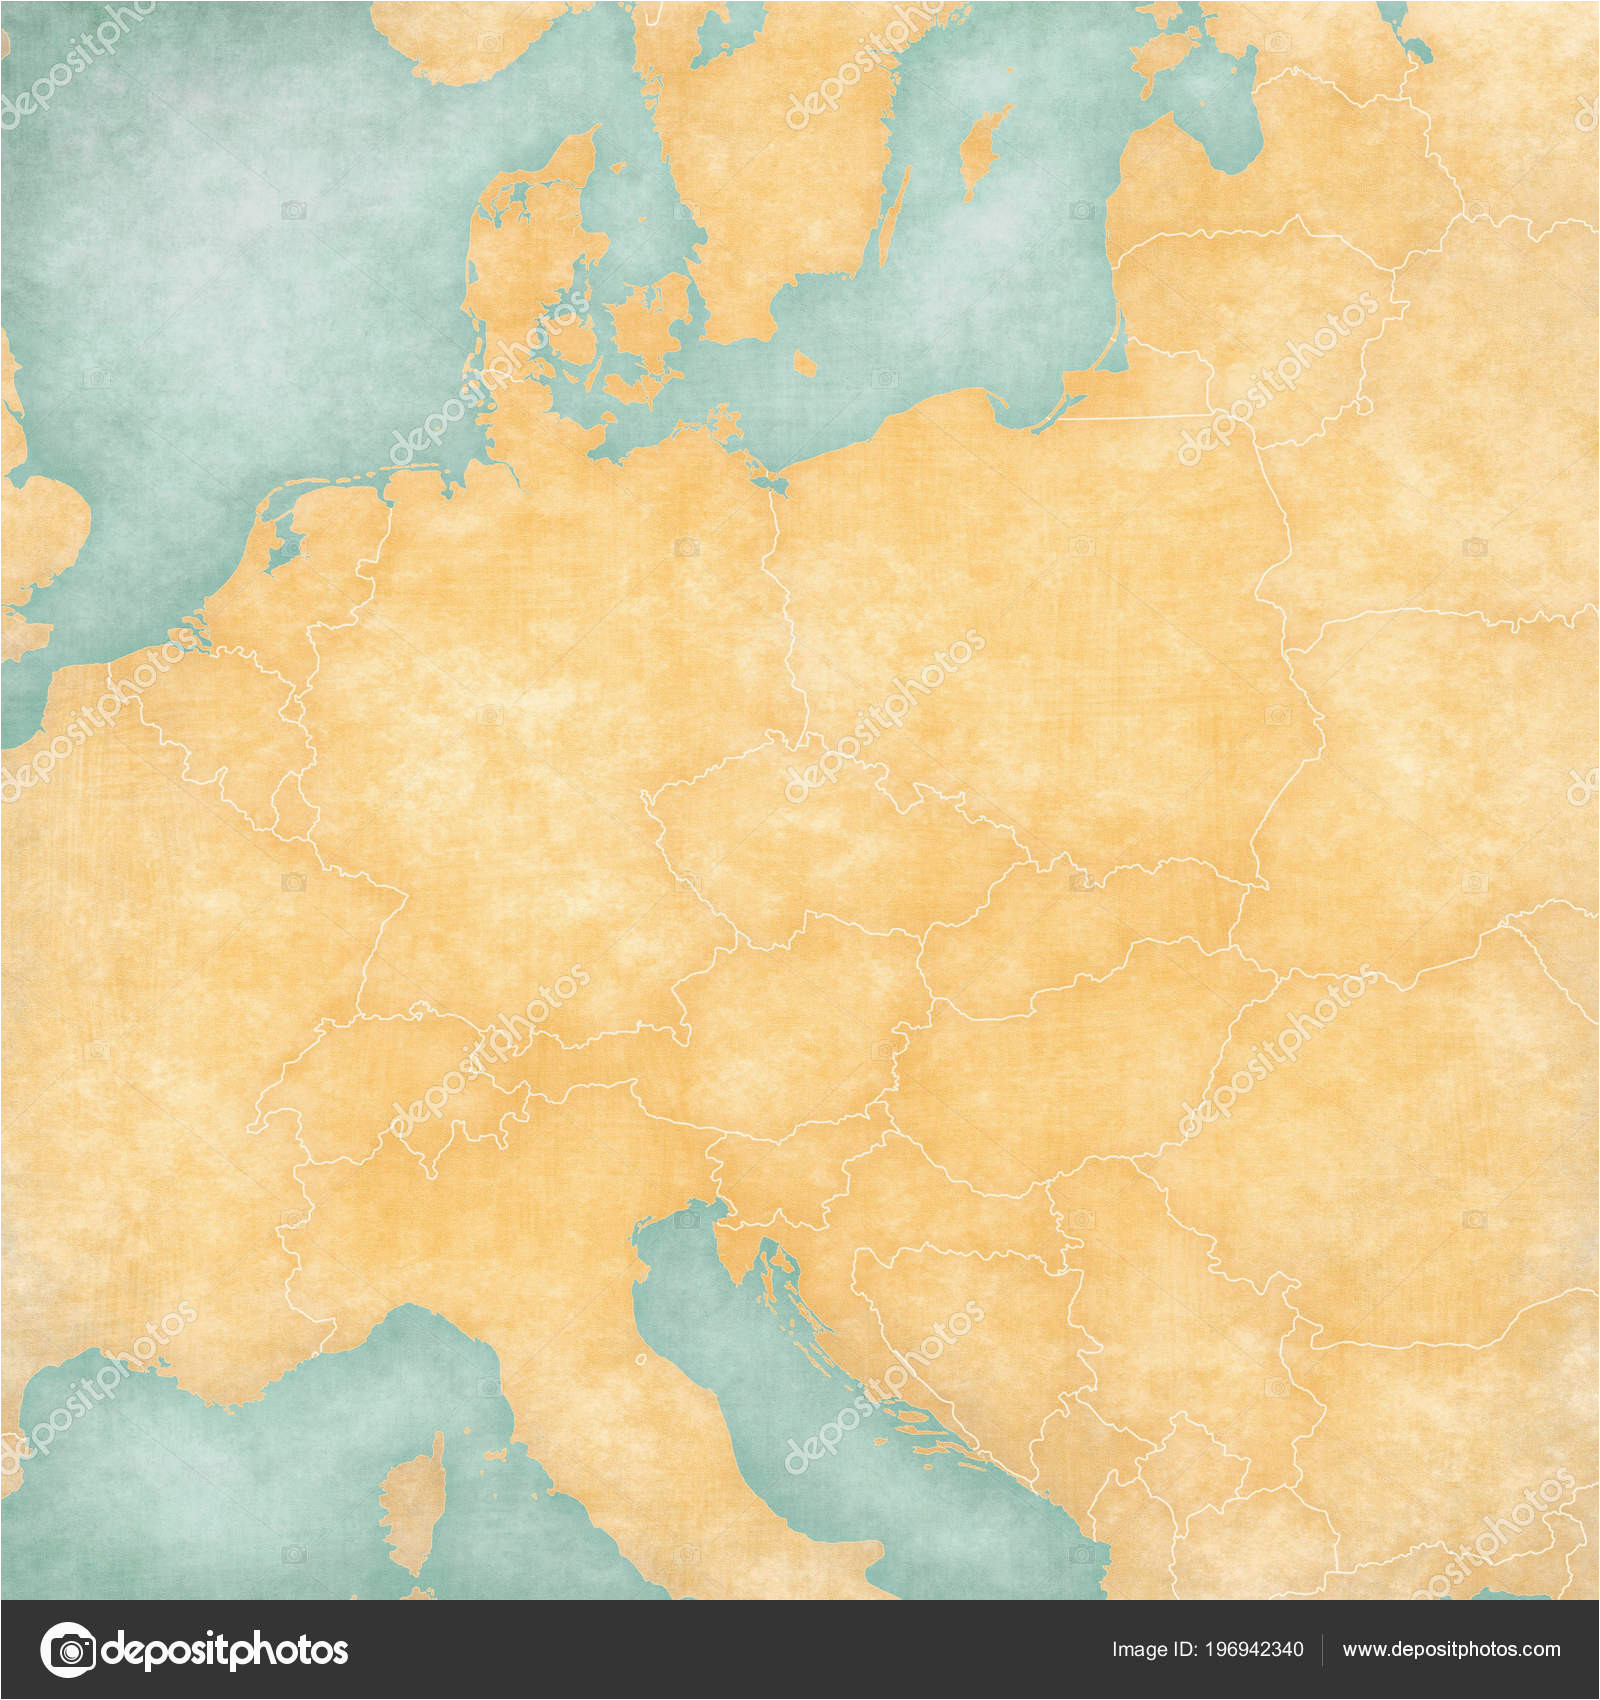 blank map central europe country borders soft grunge vintage